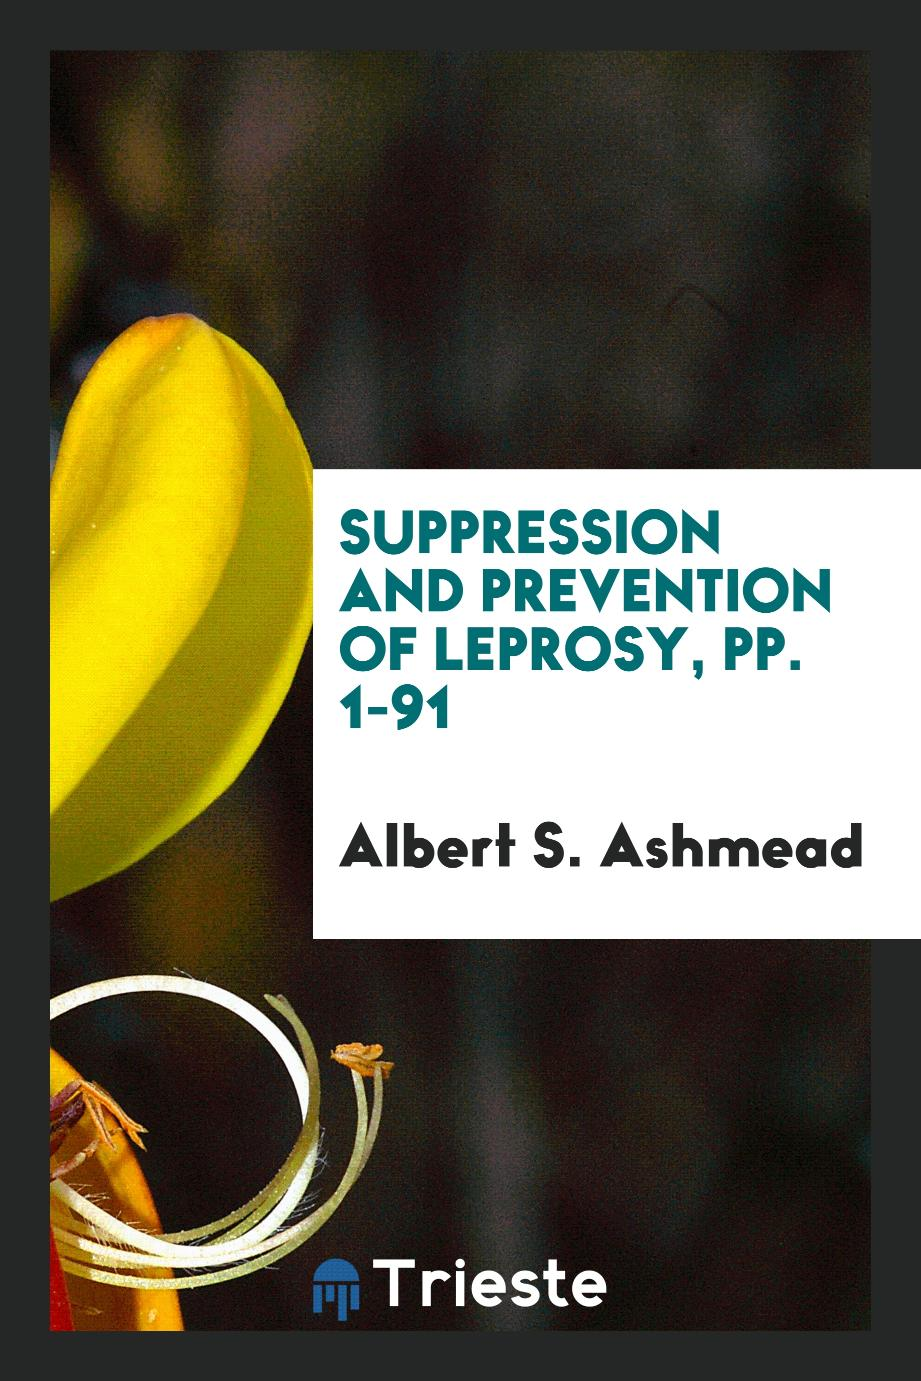 Suppression and Prevention of Leprosy, pp. 1-91